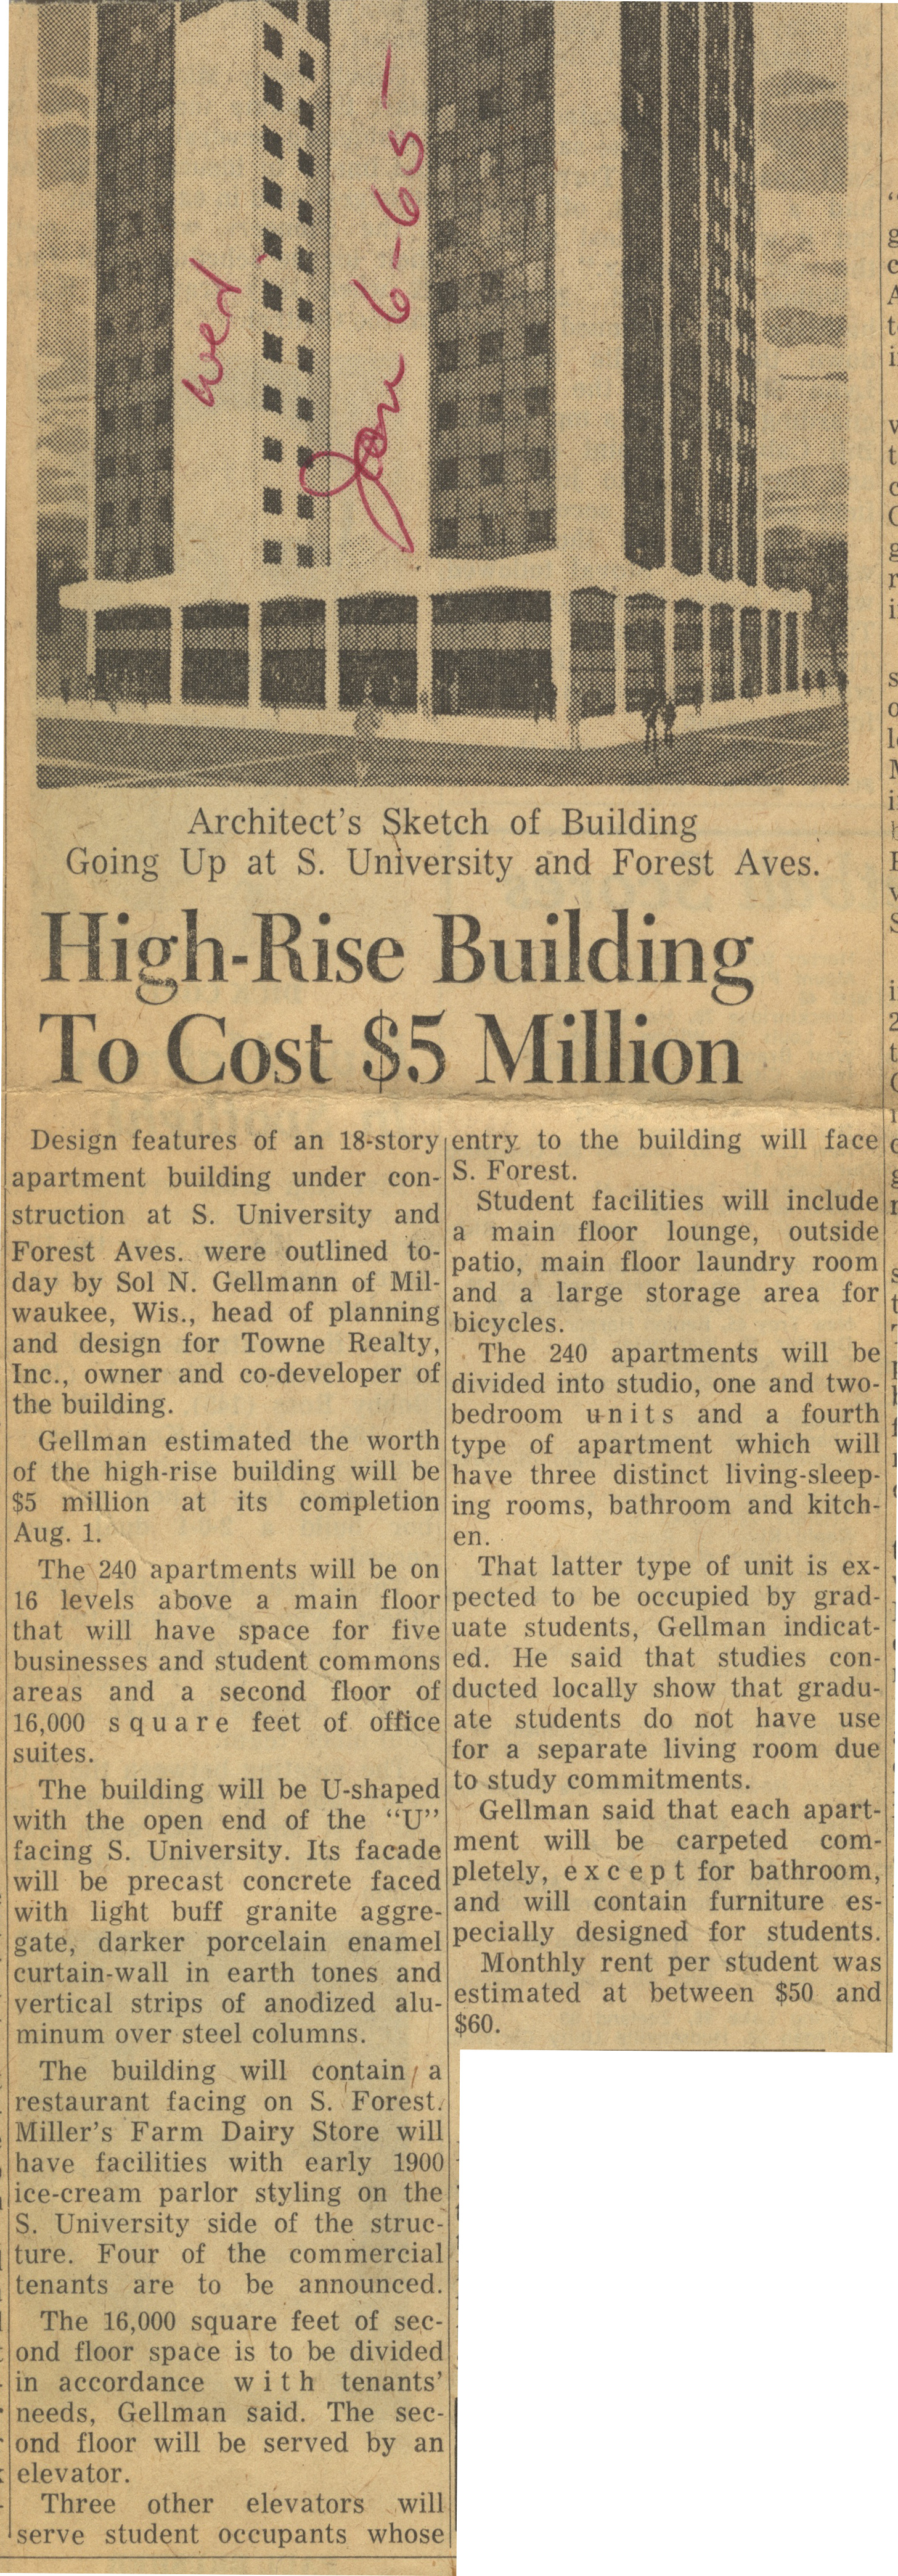 High-Rise Building To Cost $5 Million image